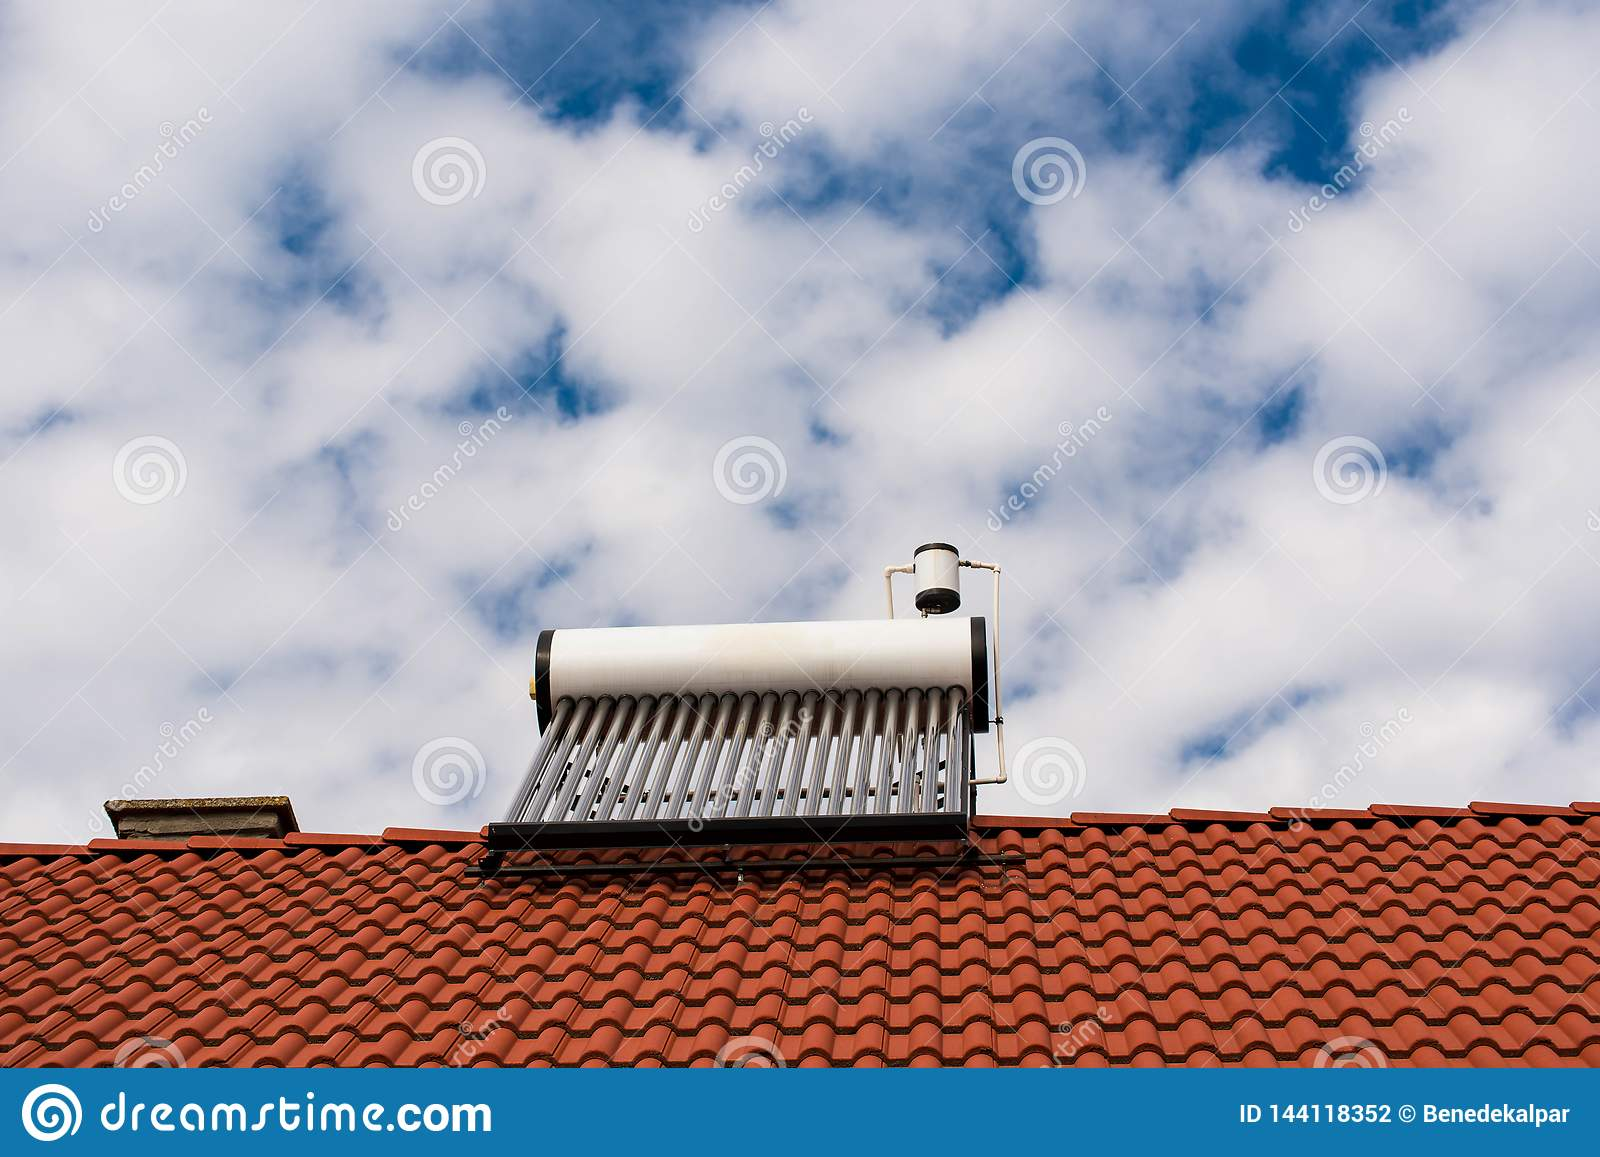 Solar water heater boiler on rooftop